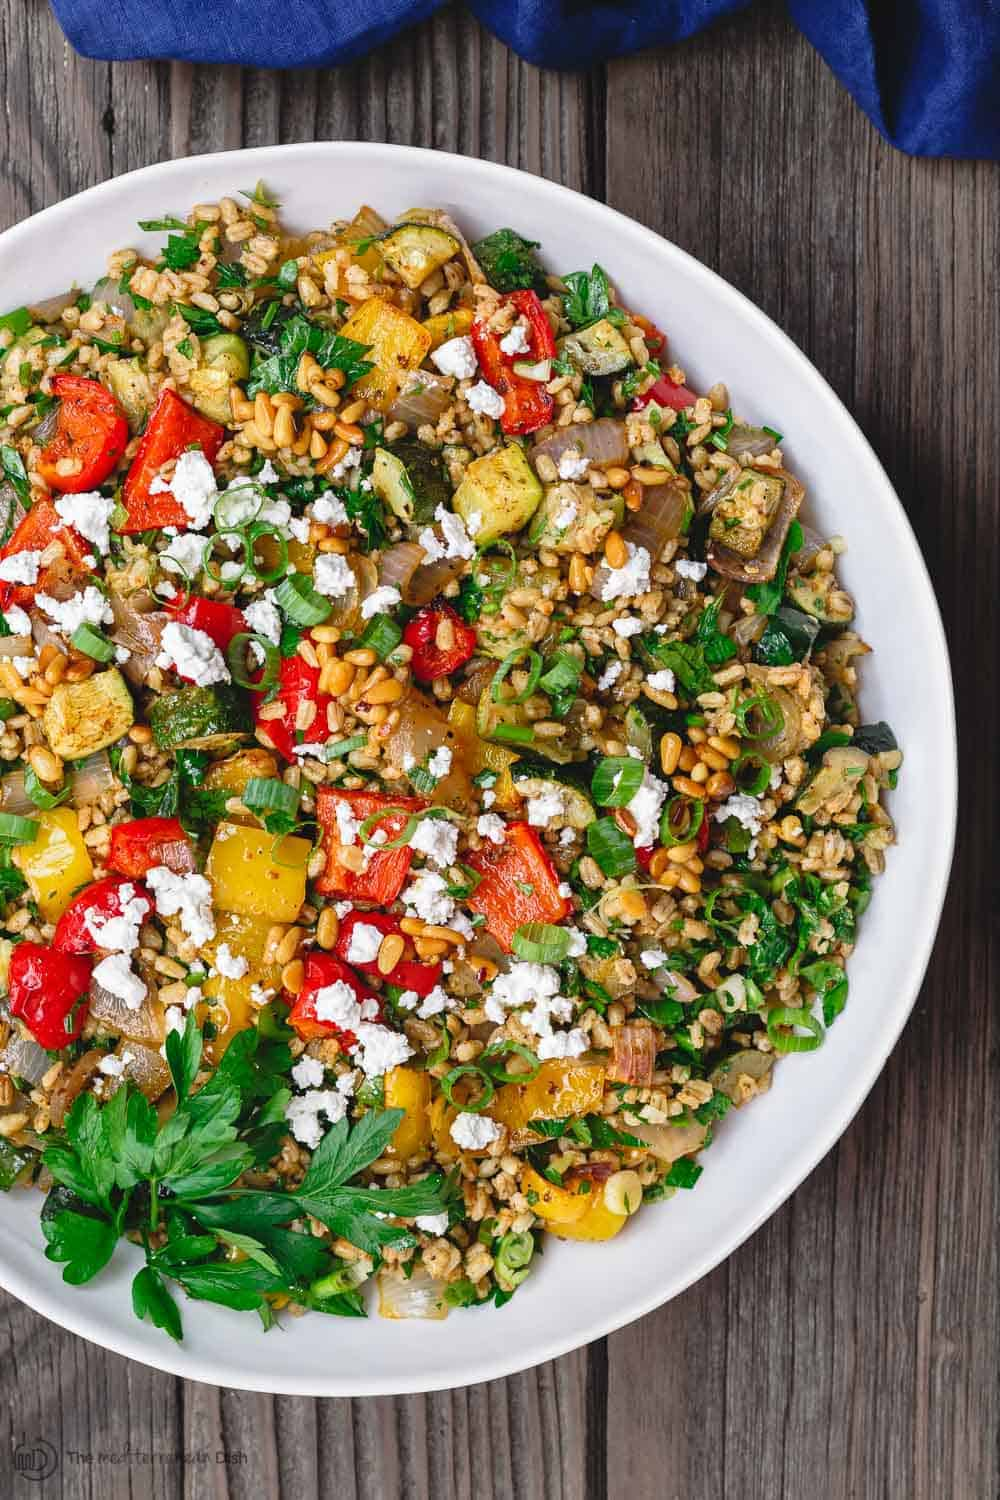 Barley Recipe with Roasted Vegetables | The Mediterranean Dish